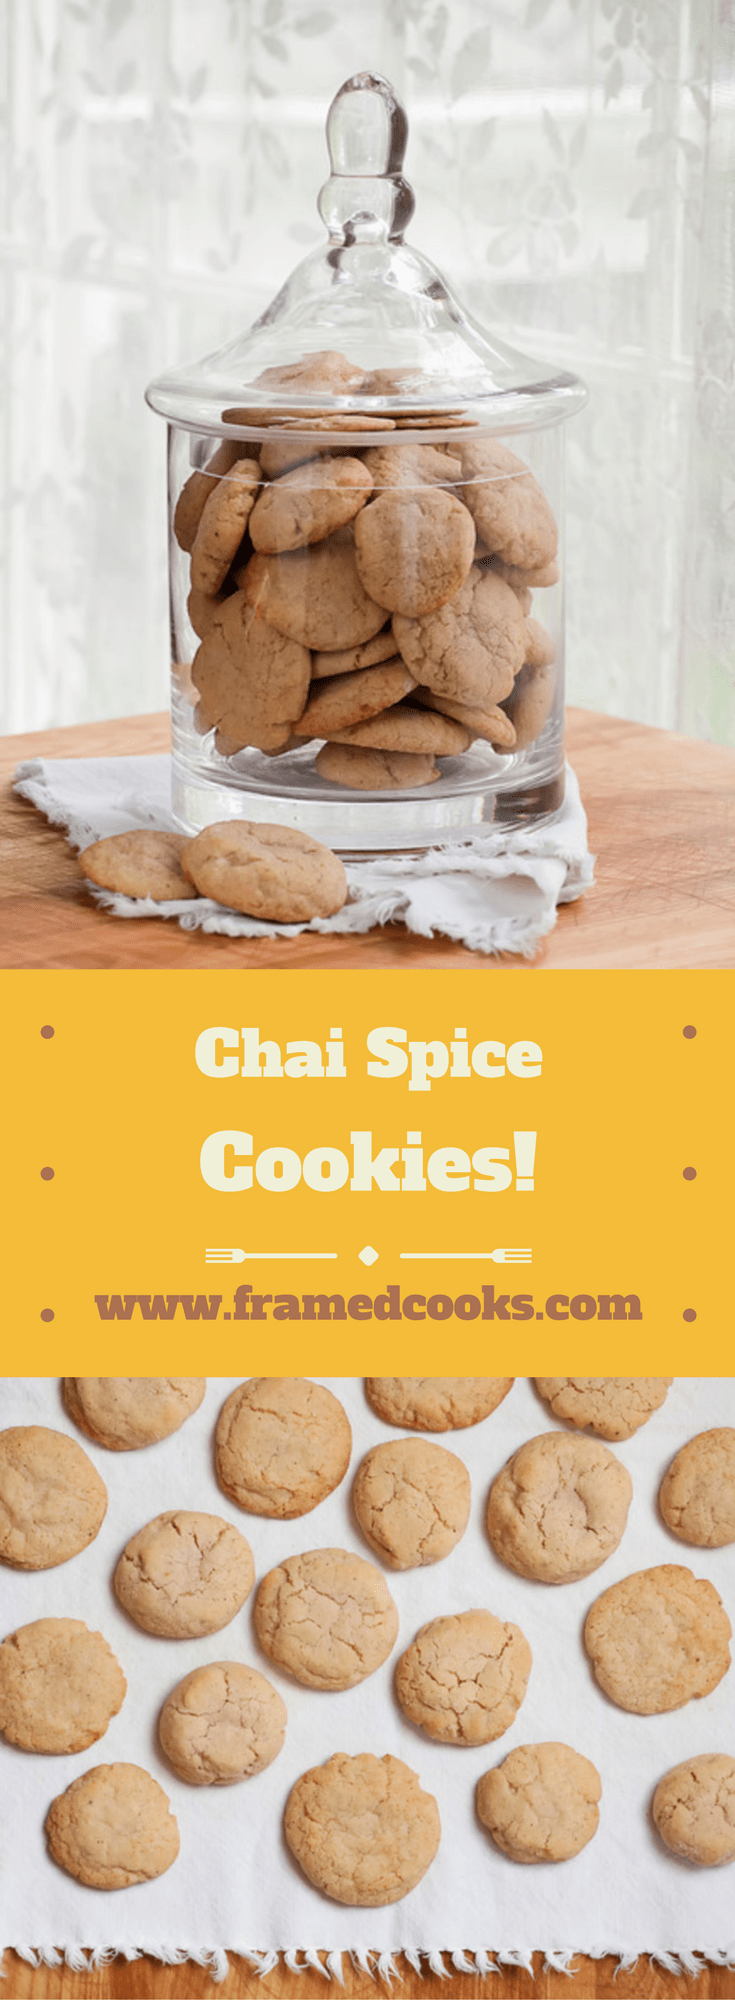 All the spicy and wonderful tastes of chai tea in a cookie recipe that is perfect for the holidays. Chai spice cookies and a cup of tea!